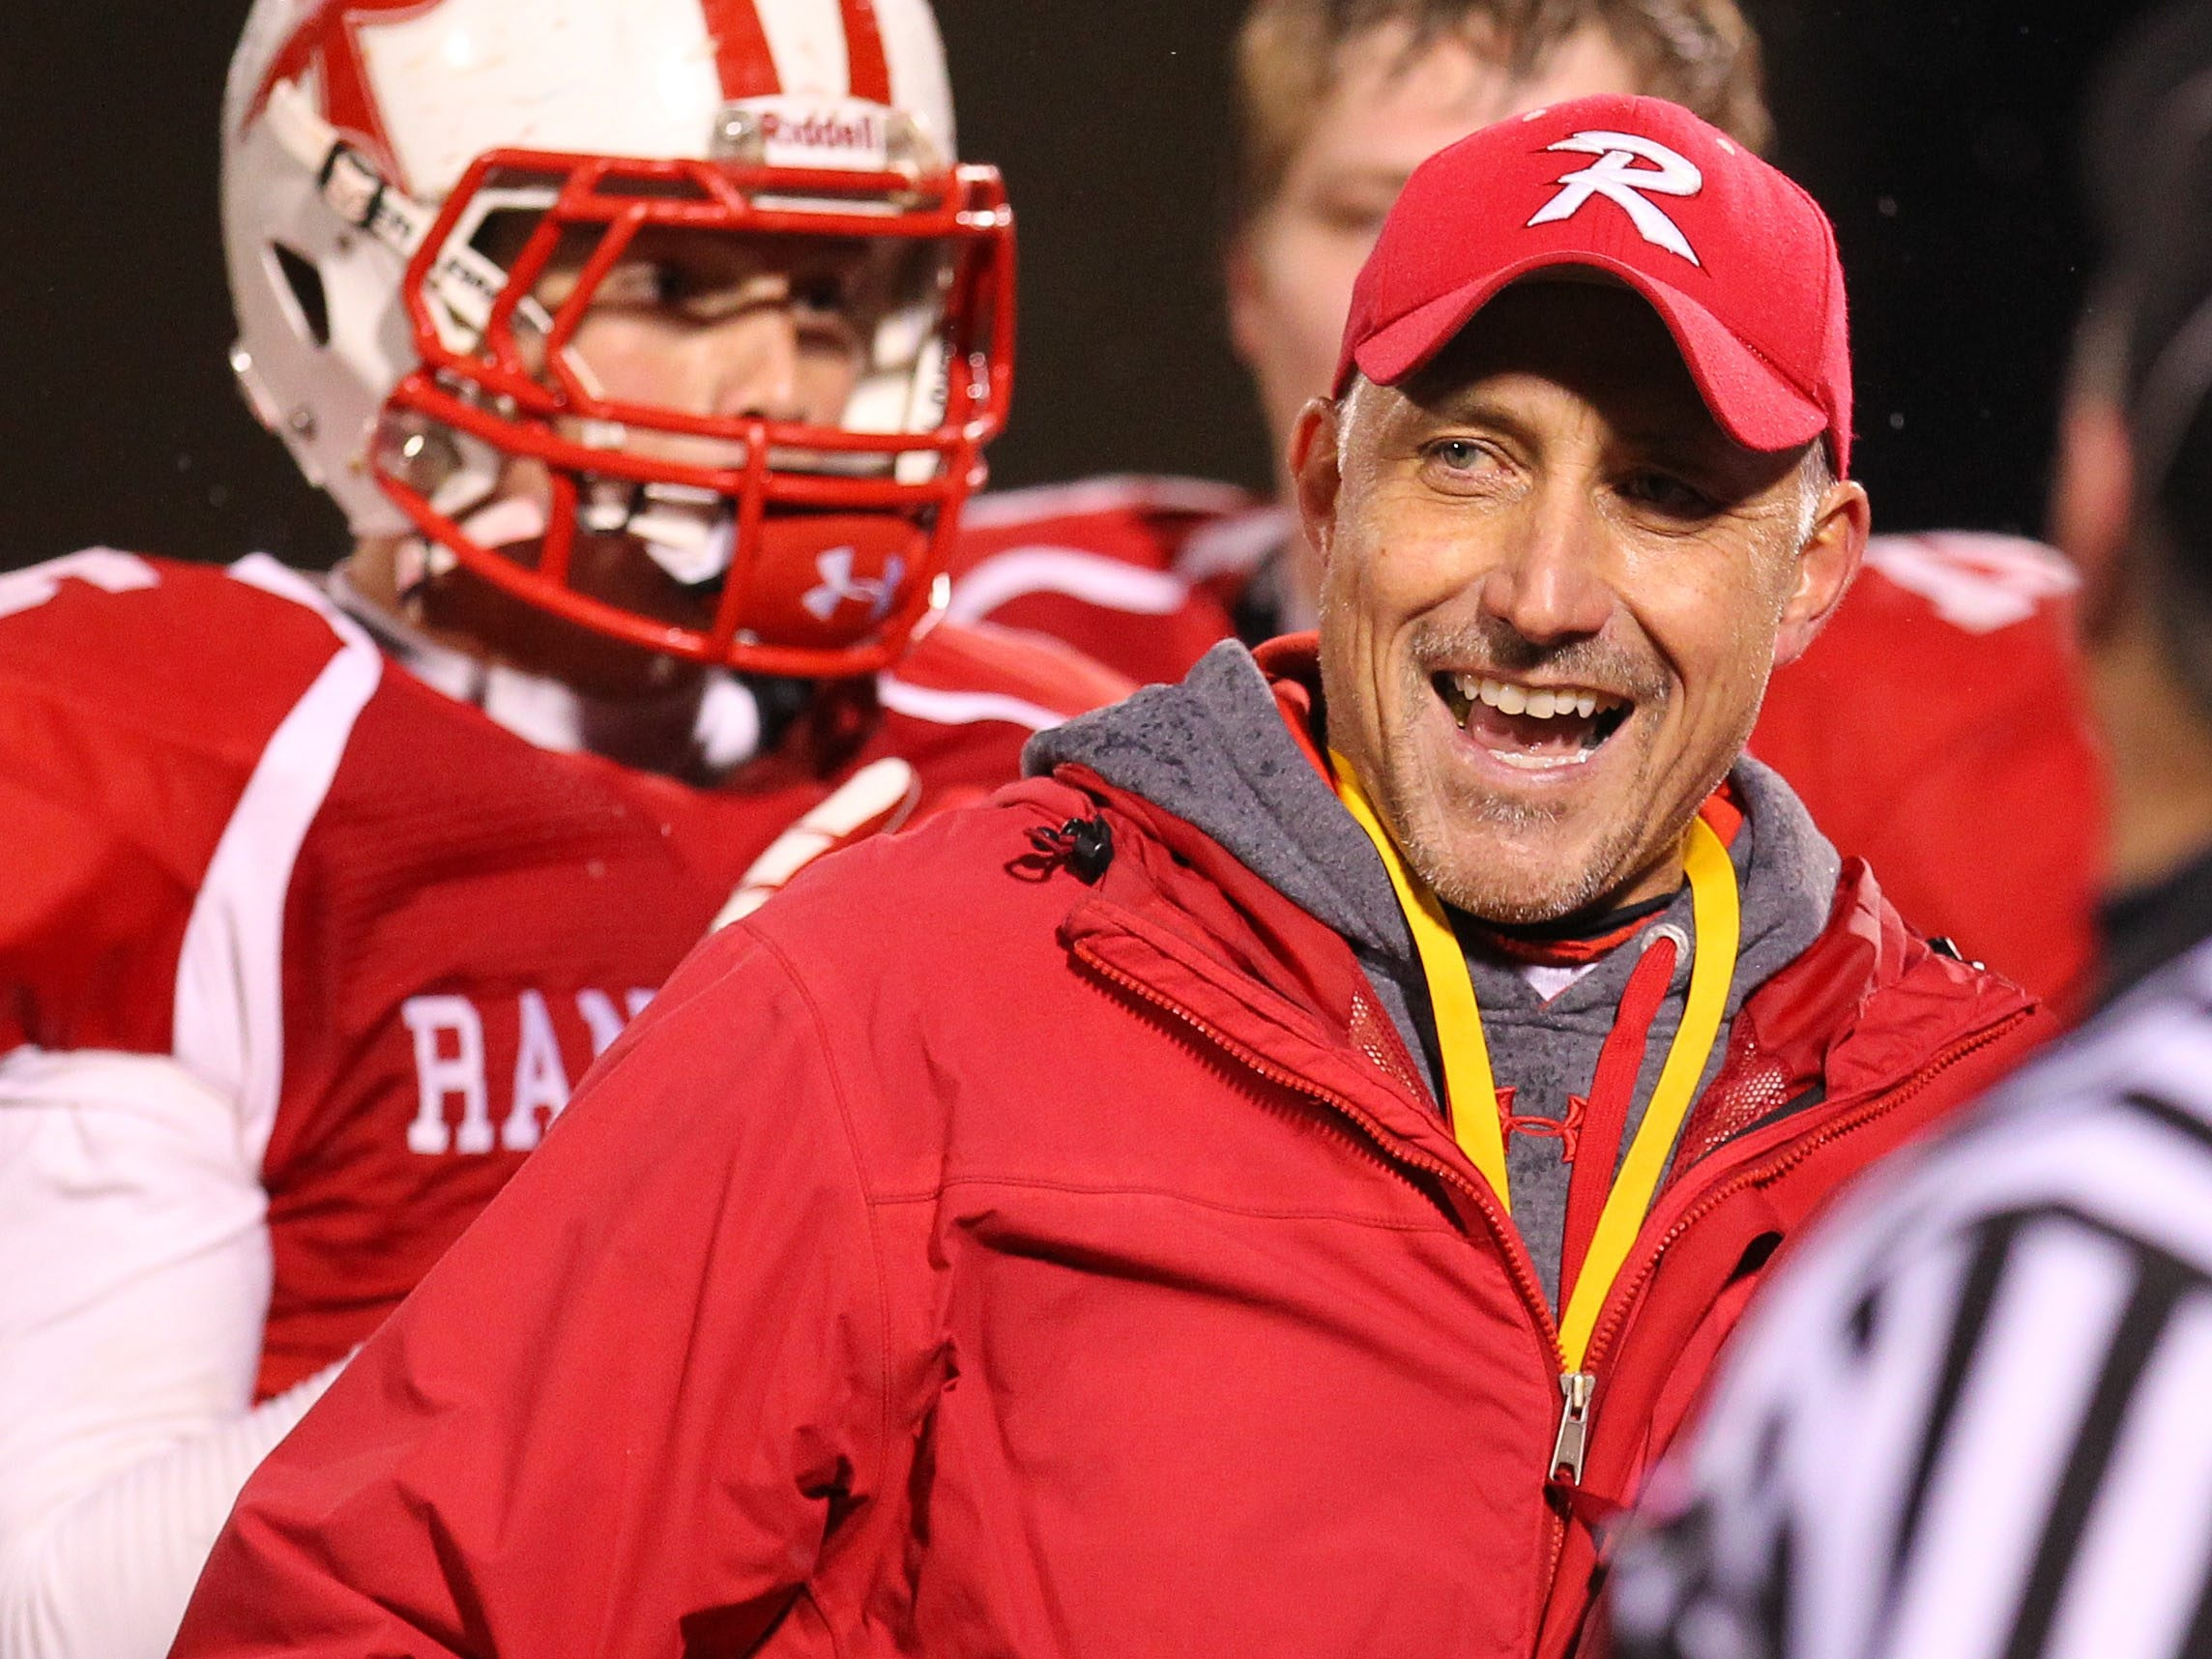 First-year coach Brent Brown took the Randolph Cardinals all the way to a state championship in Class D.